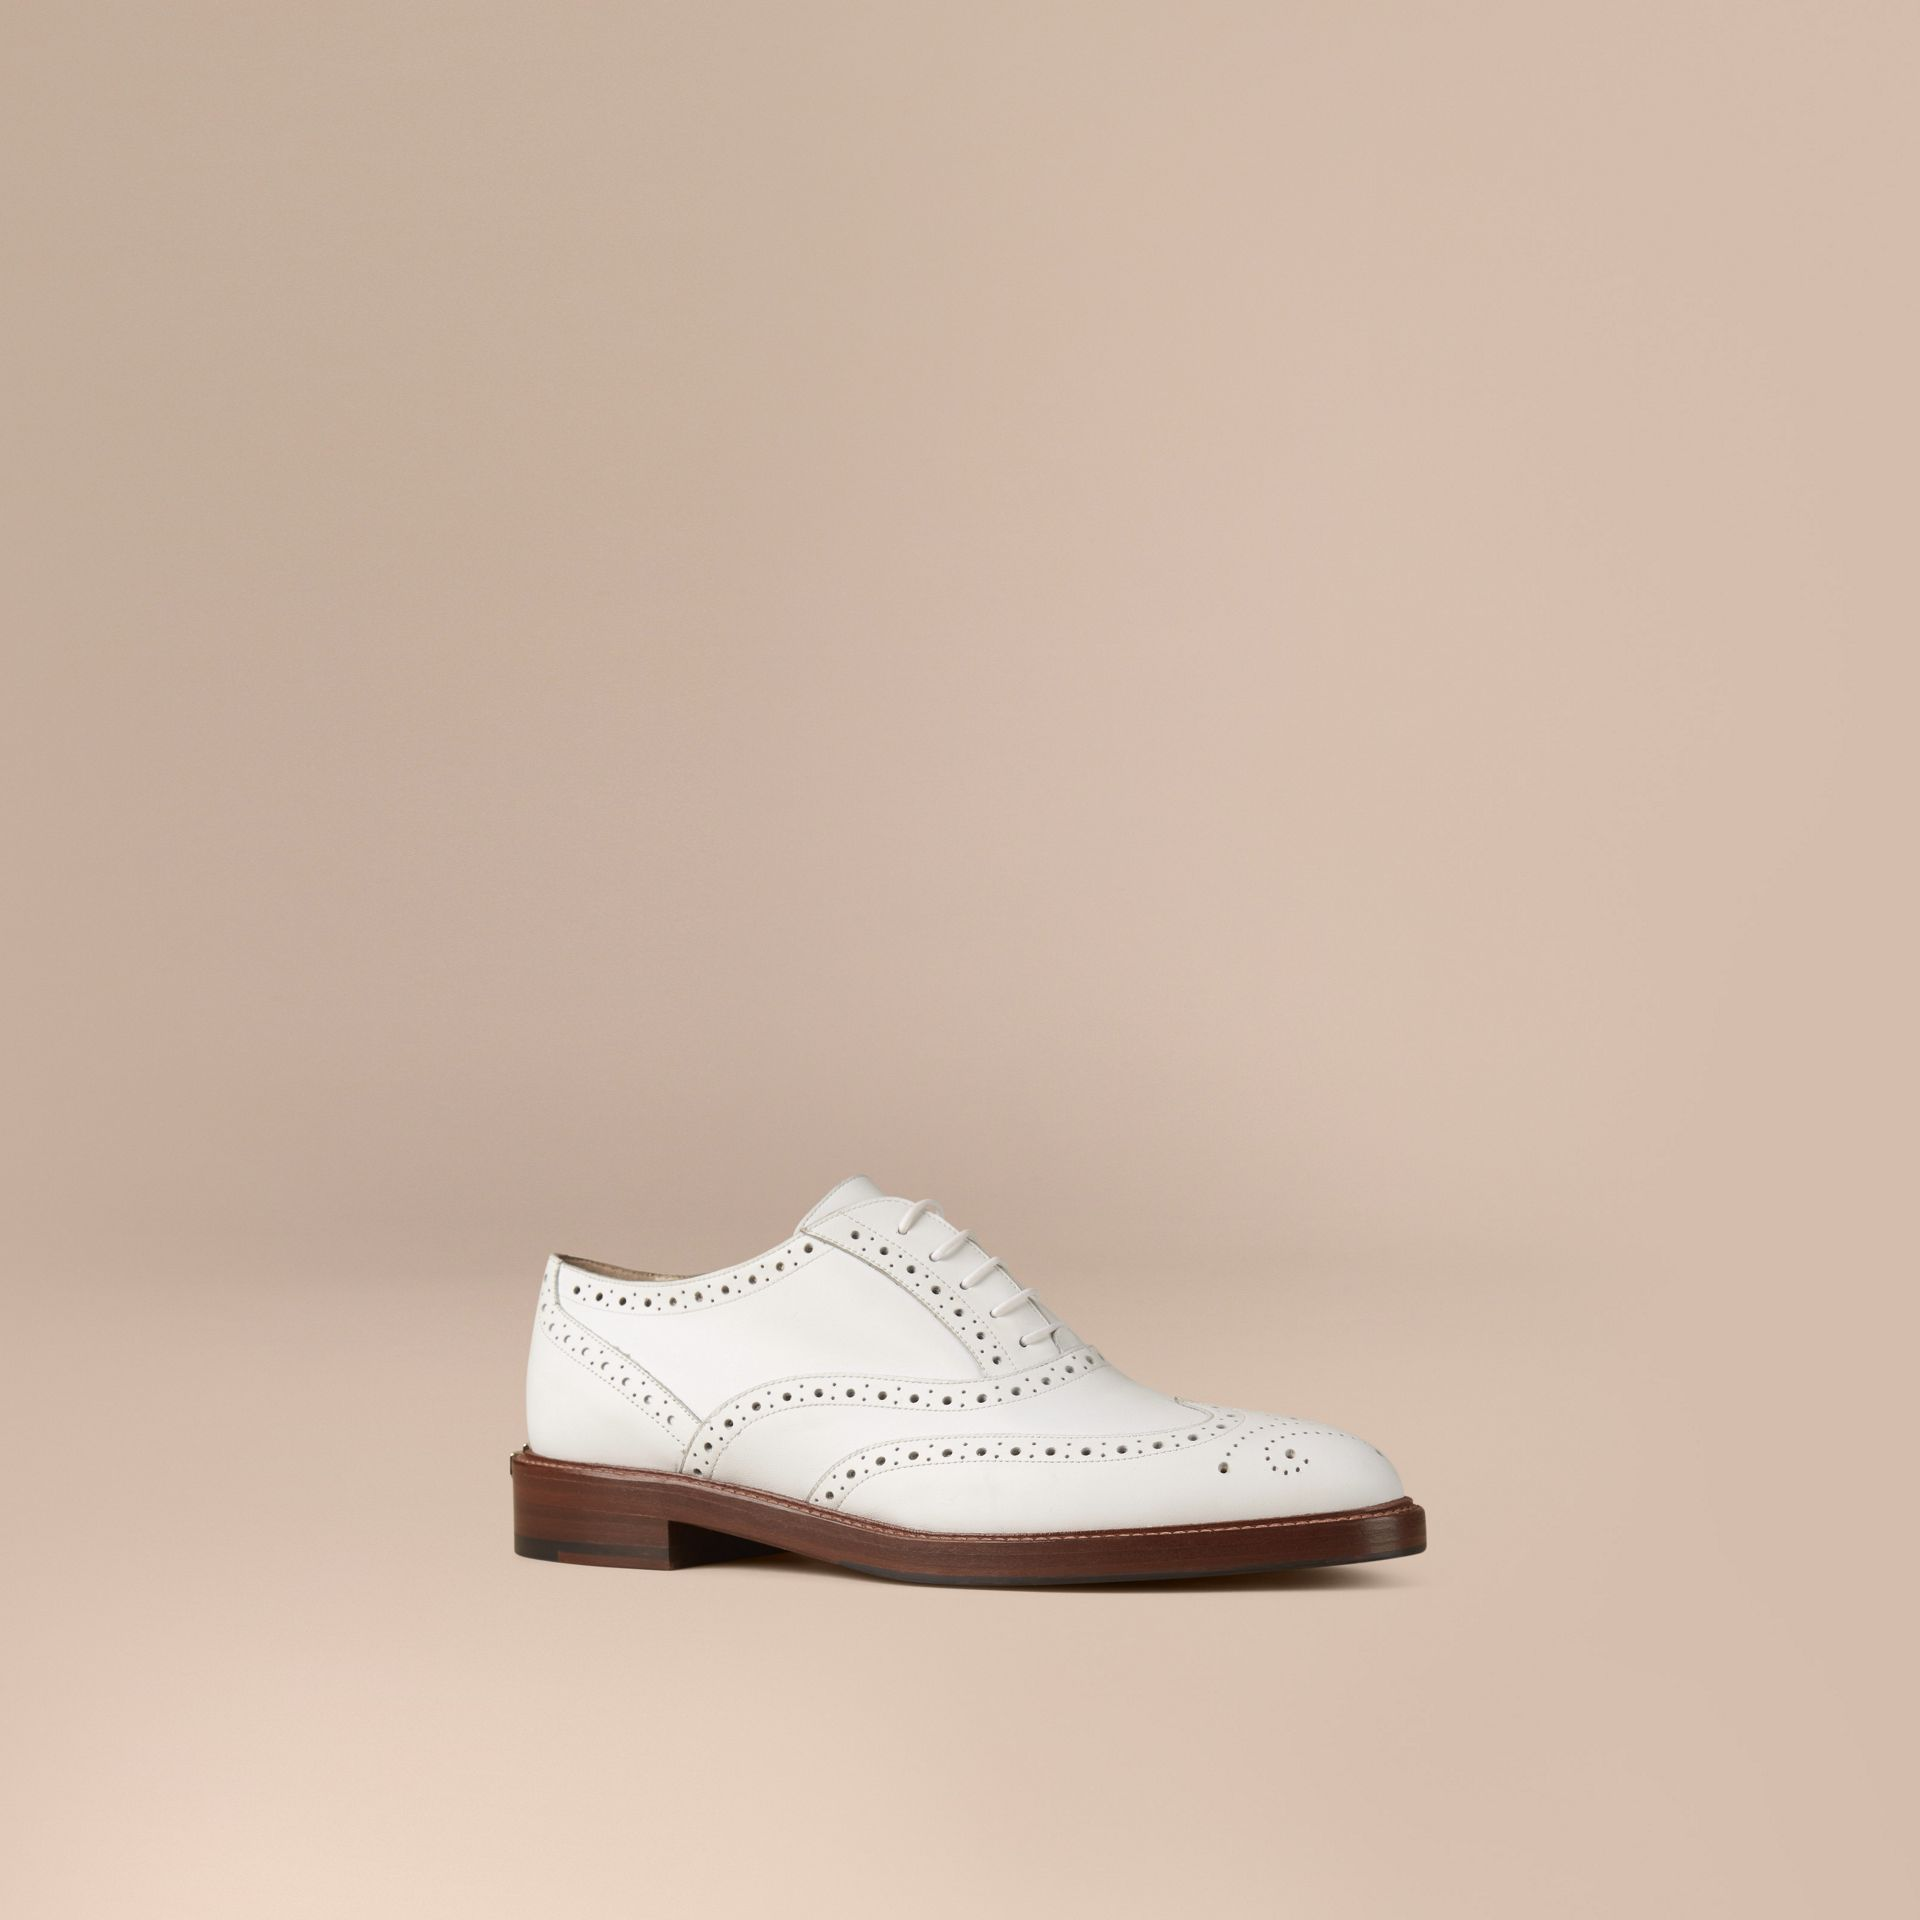 Optic white Leather Wingtip Brogues - gallery image 1